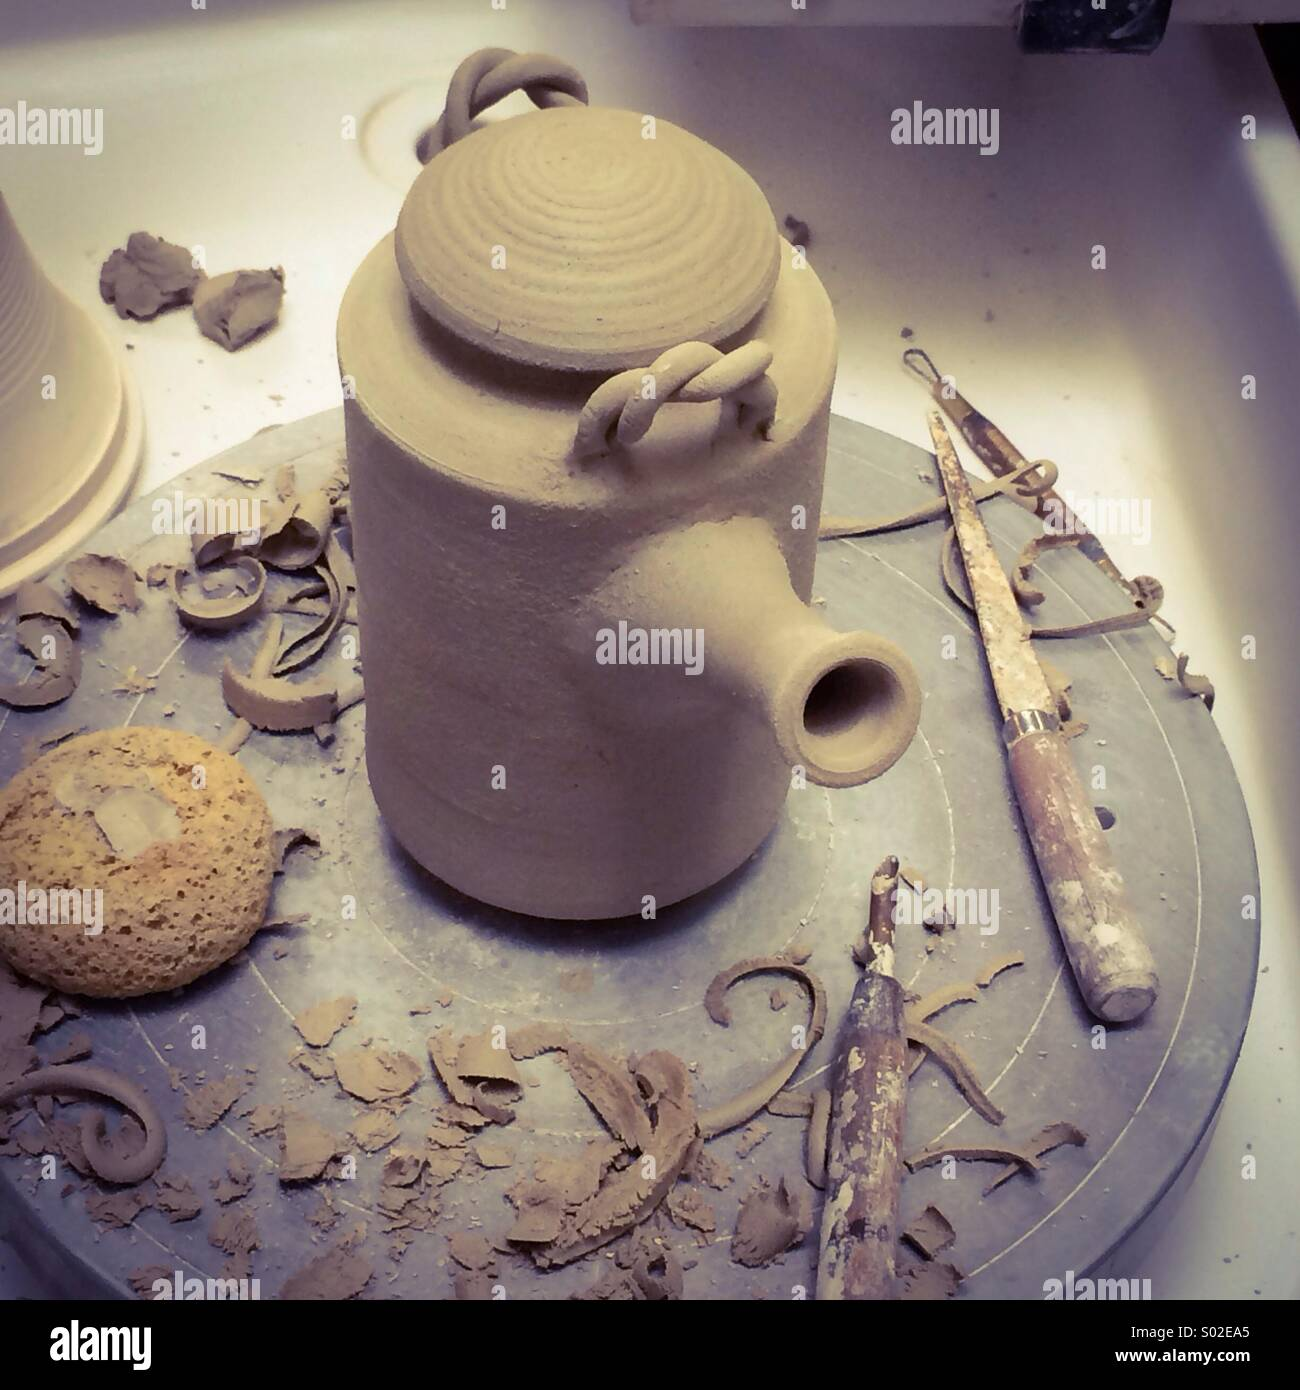 Potter making teapot out of clay on the wheel - Stock Image